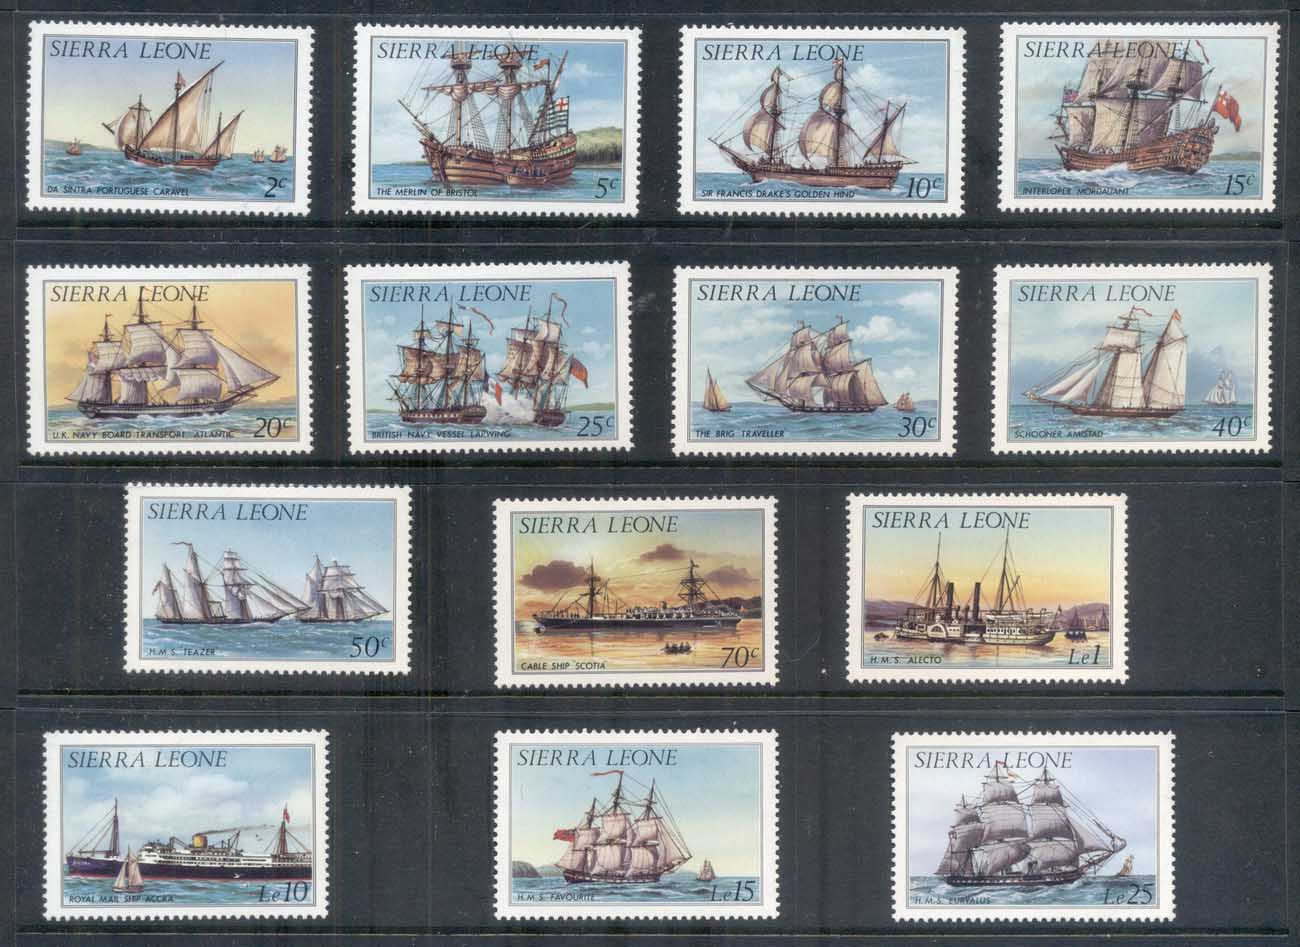 Sierra Leone 1984-85 Ships (14/16, no 2,5le) MLH